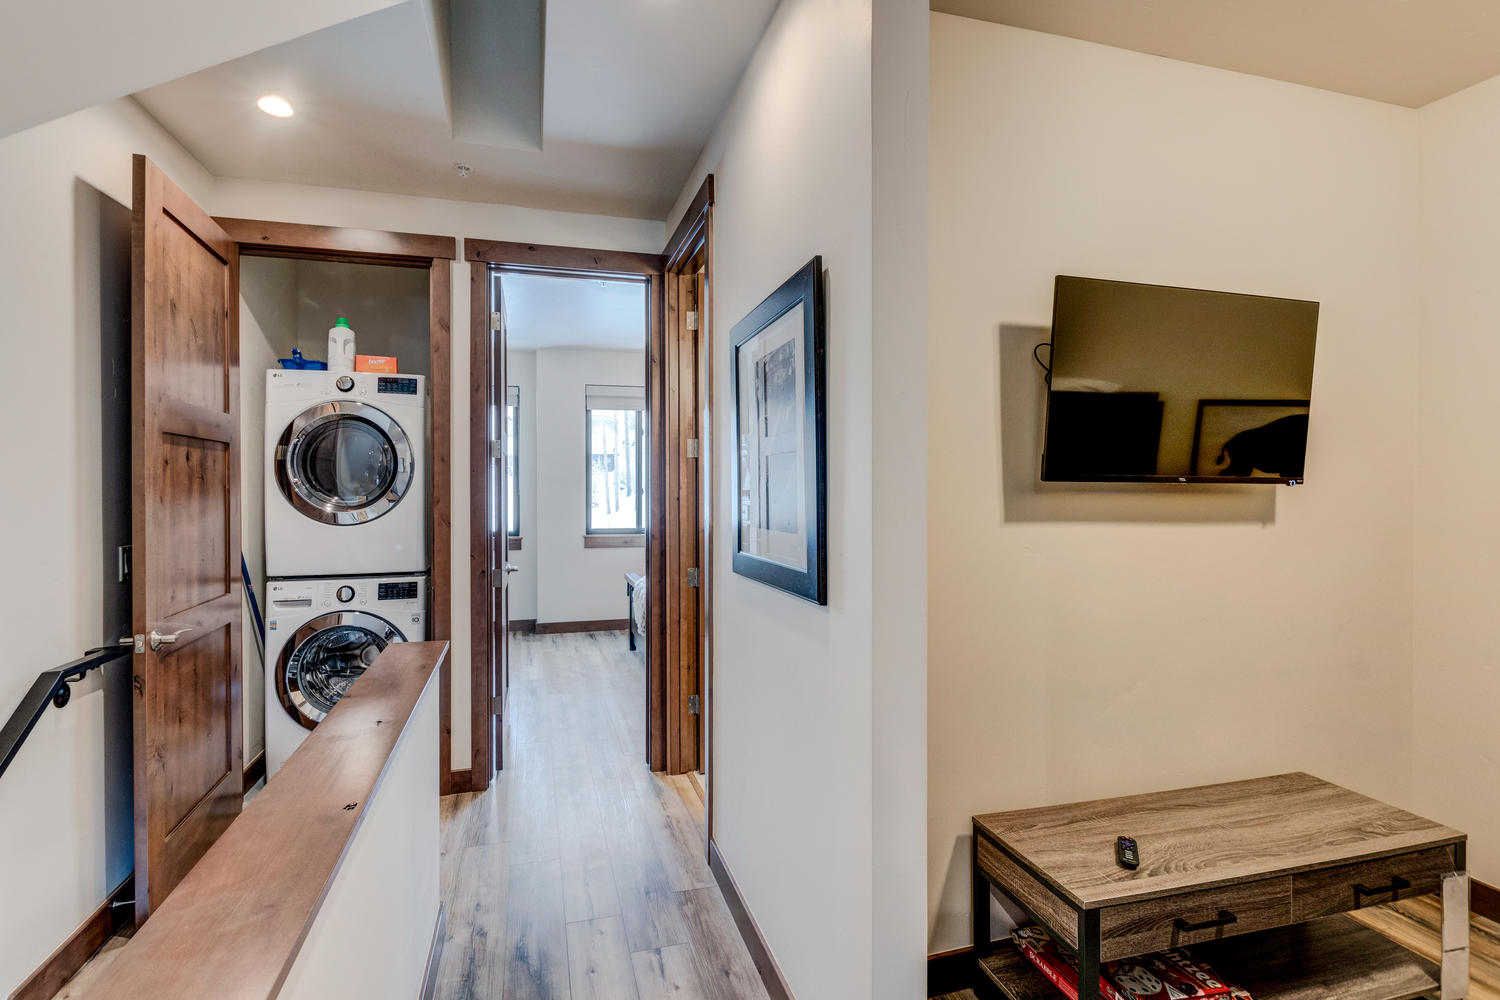 Upper hallway area with laundry closet